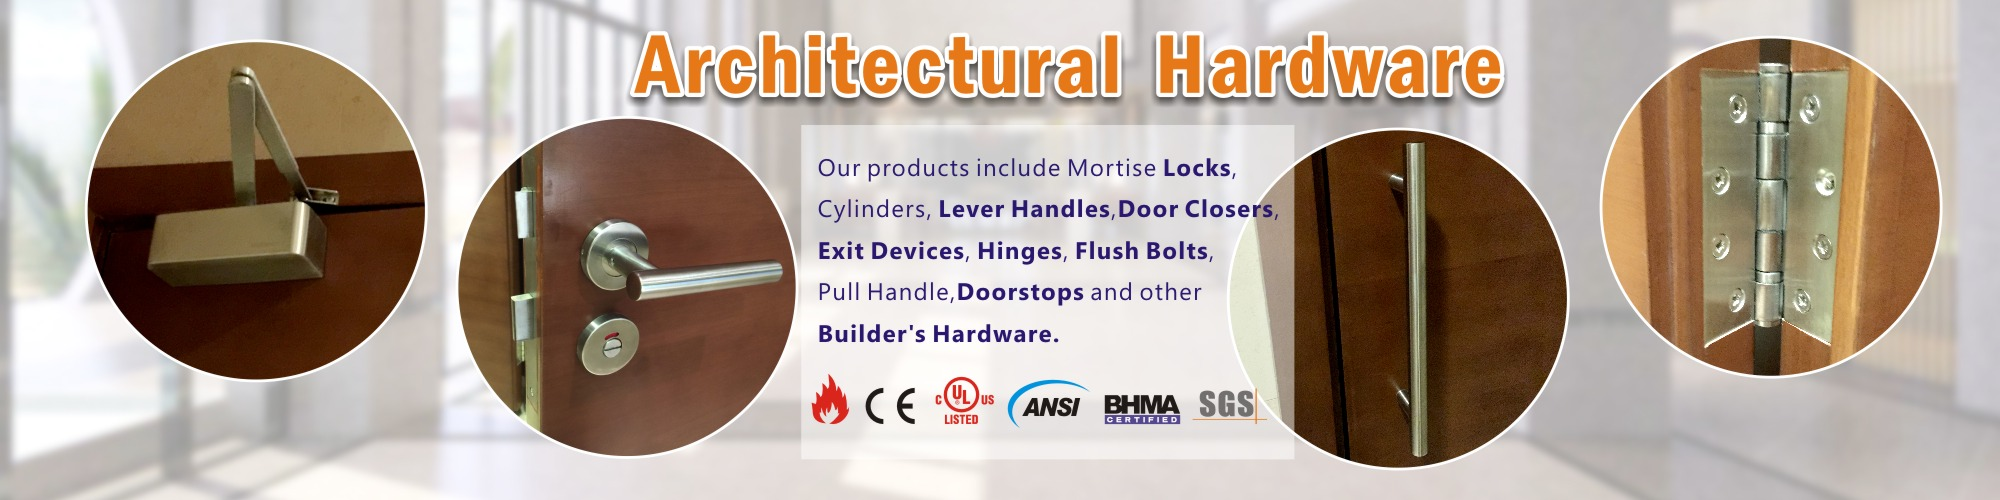 Architectural Hardware manufacturers-D&D Hardware